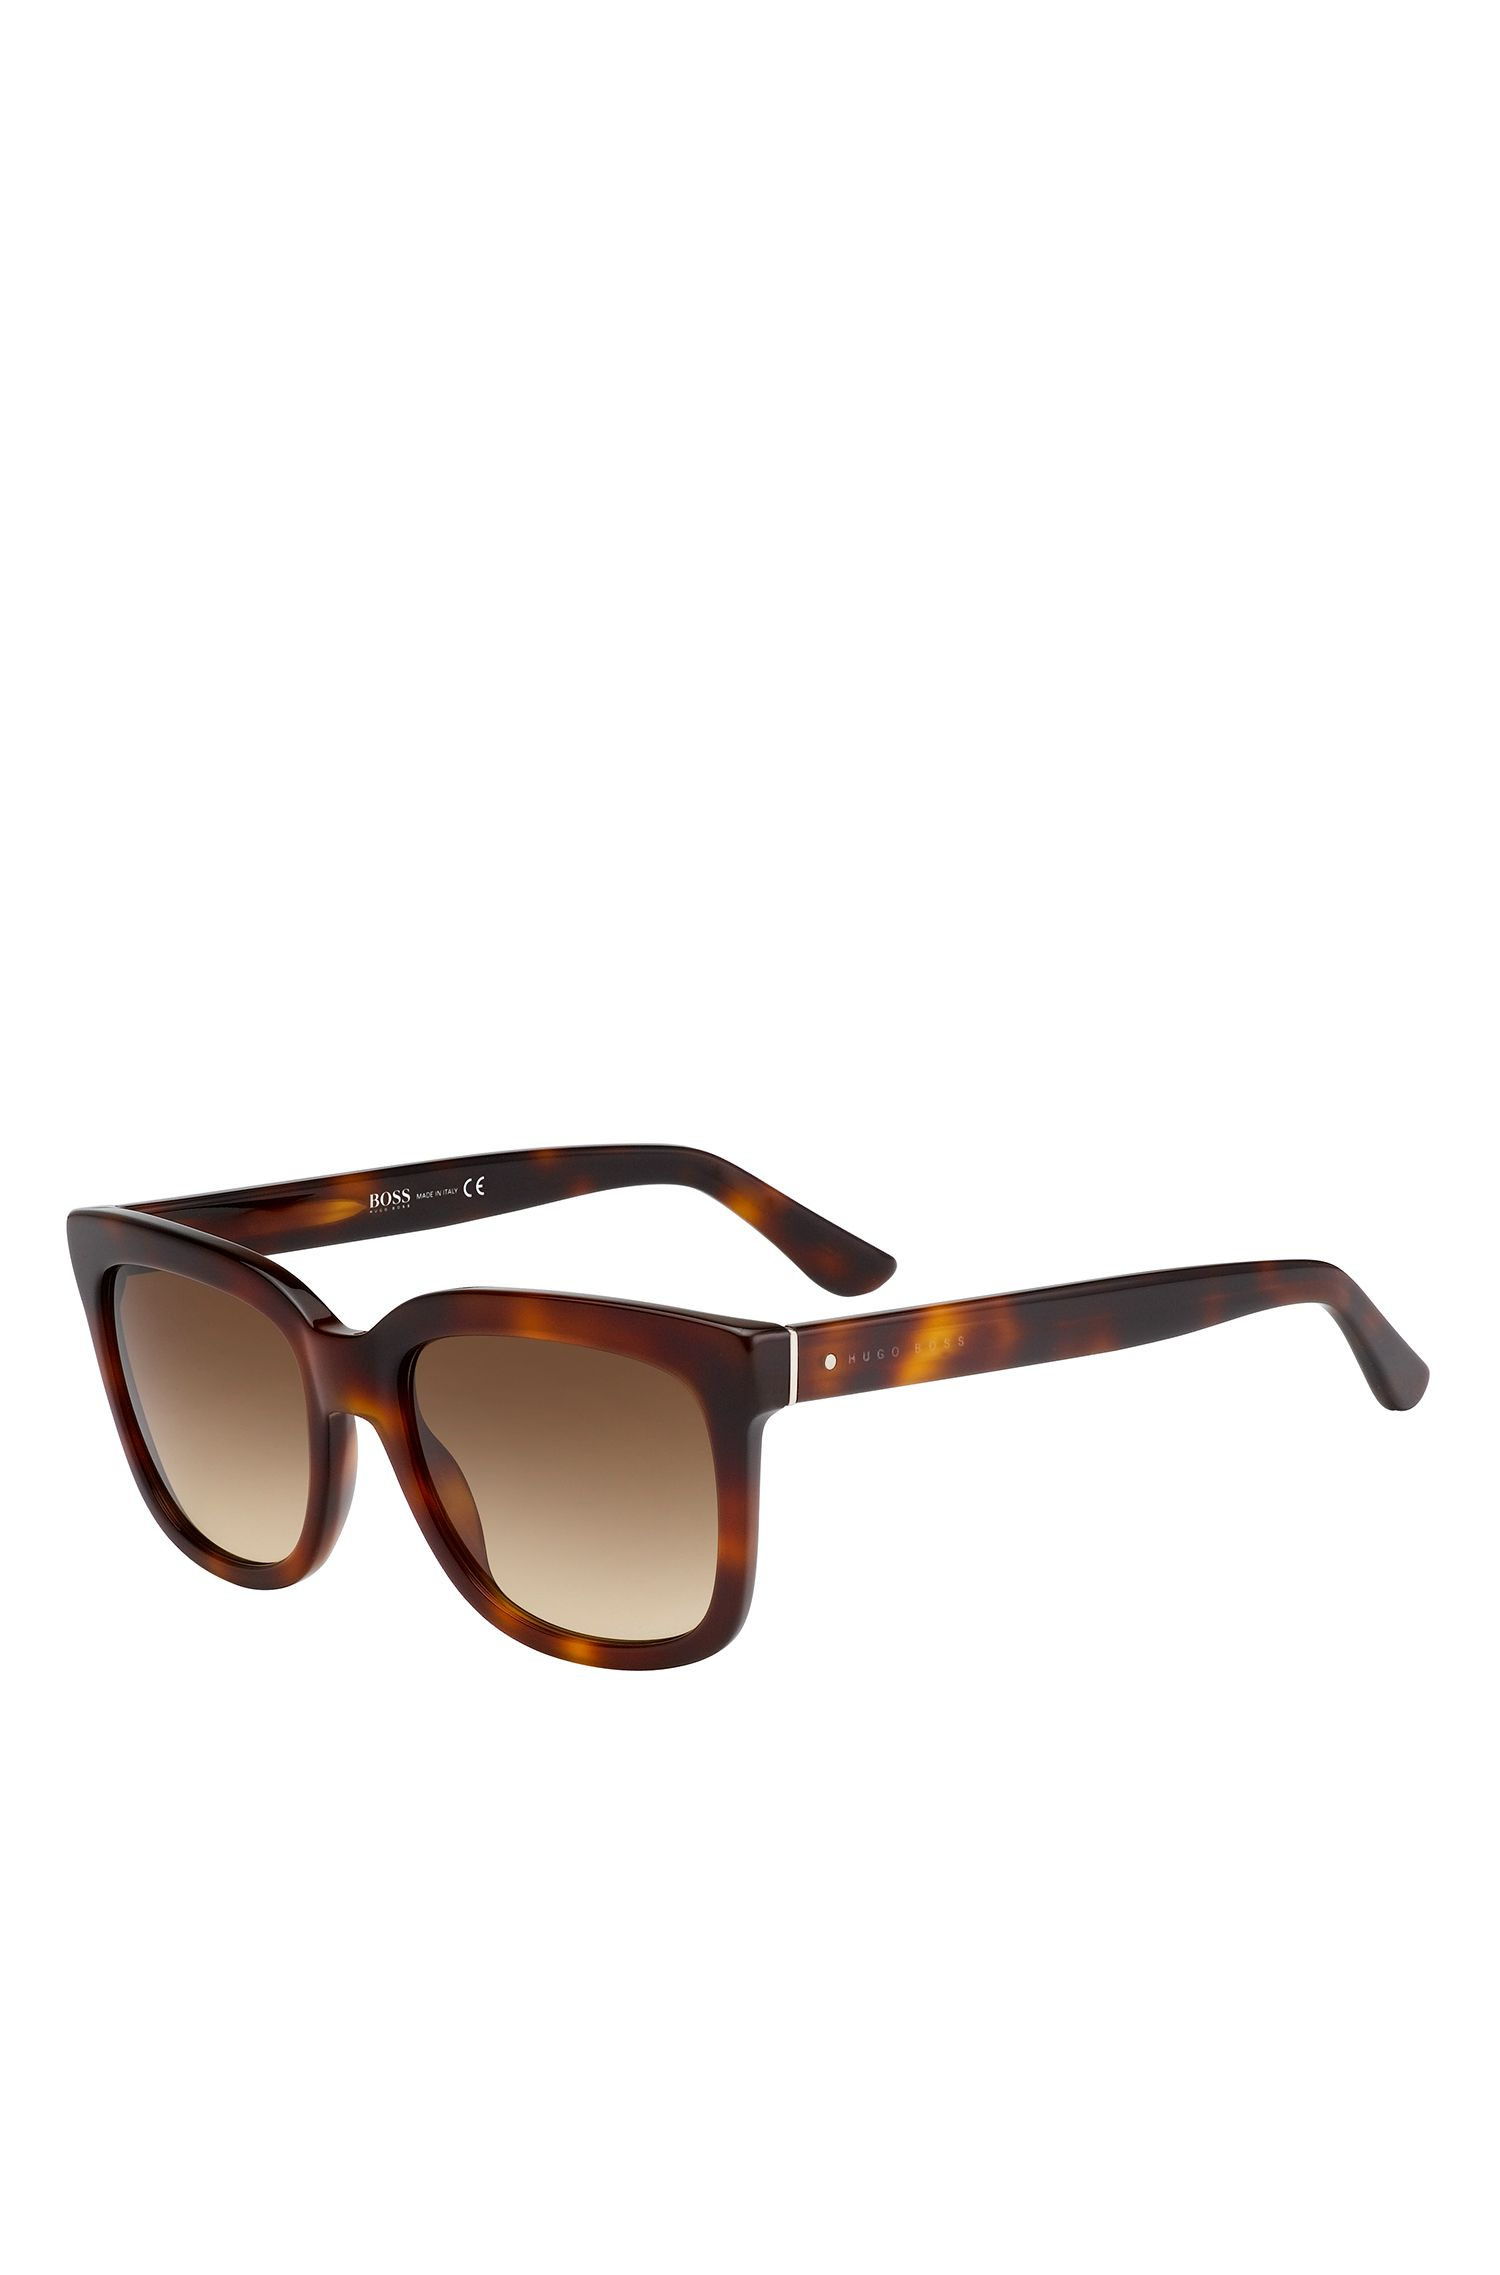 Brown Lens Rectangular Sunglasses | BOSS 0741S, Assorted-Pre-Pack